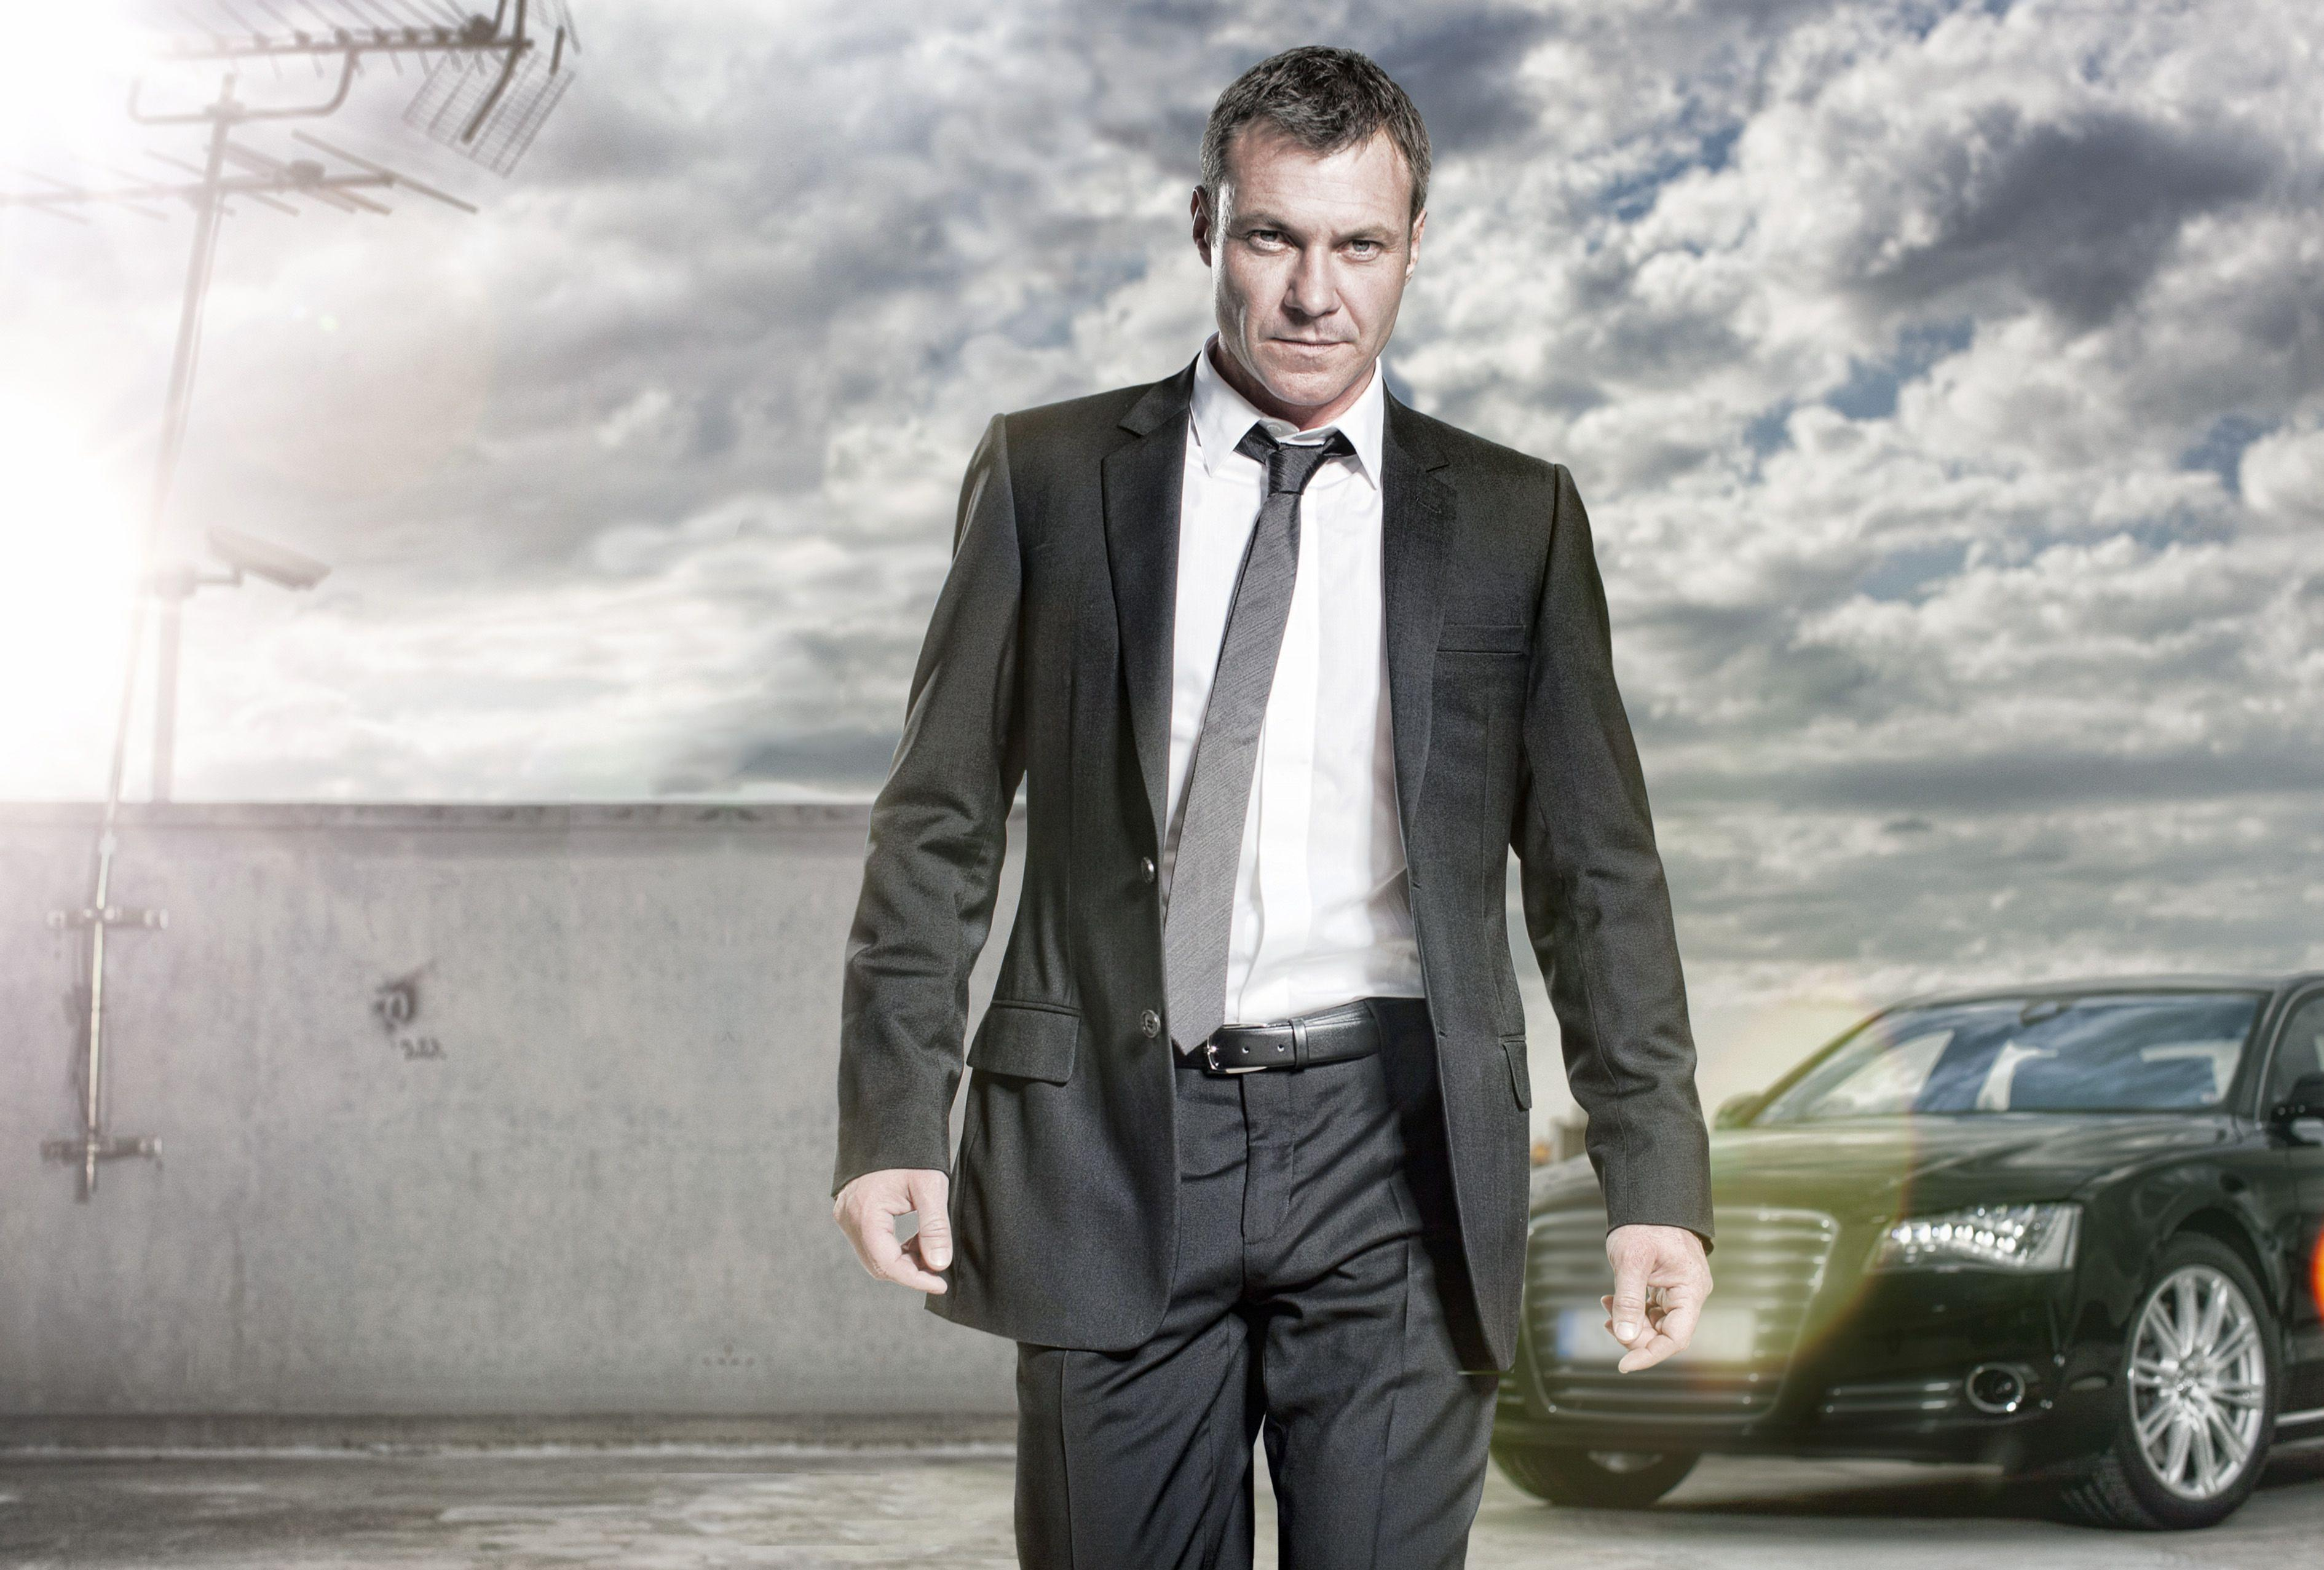 Chris Vance Screensavers